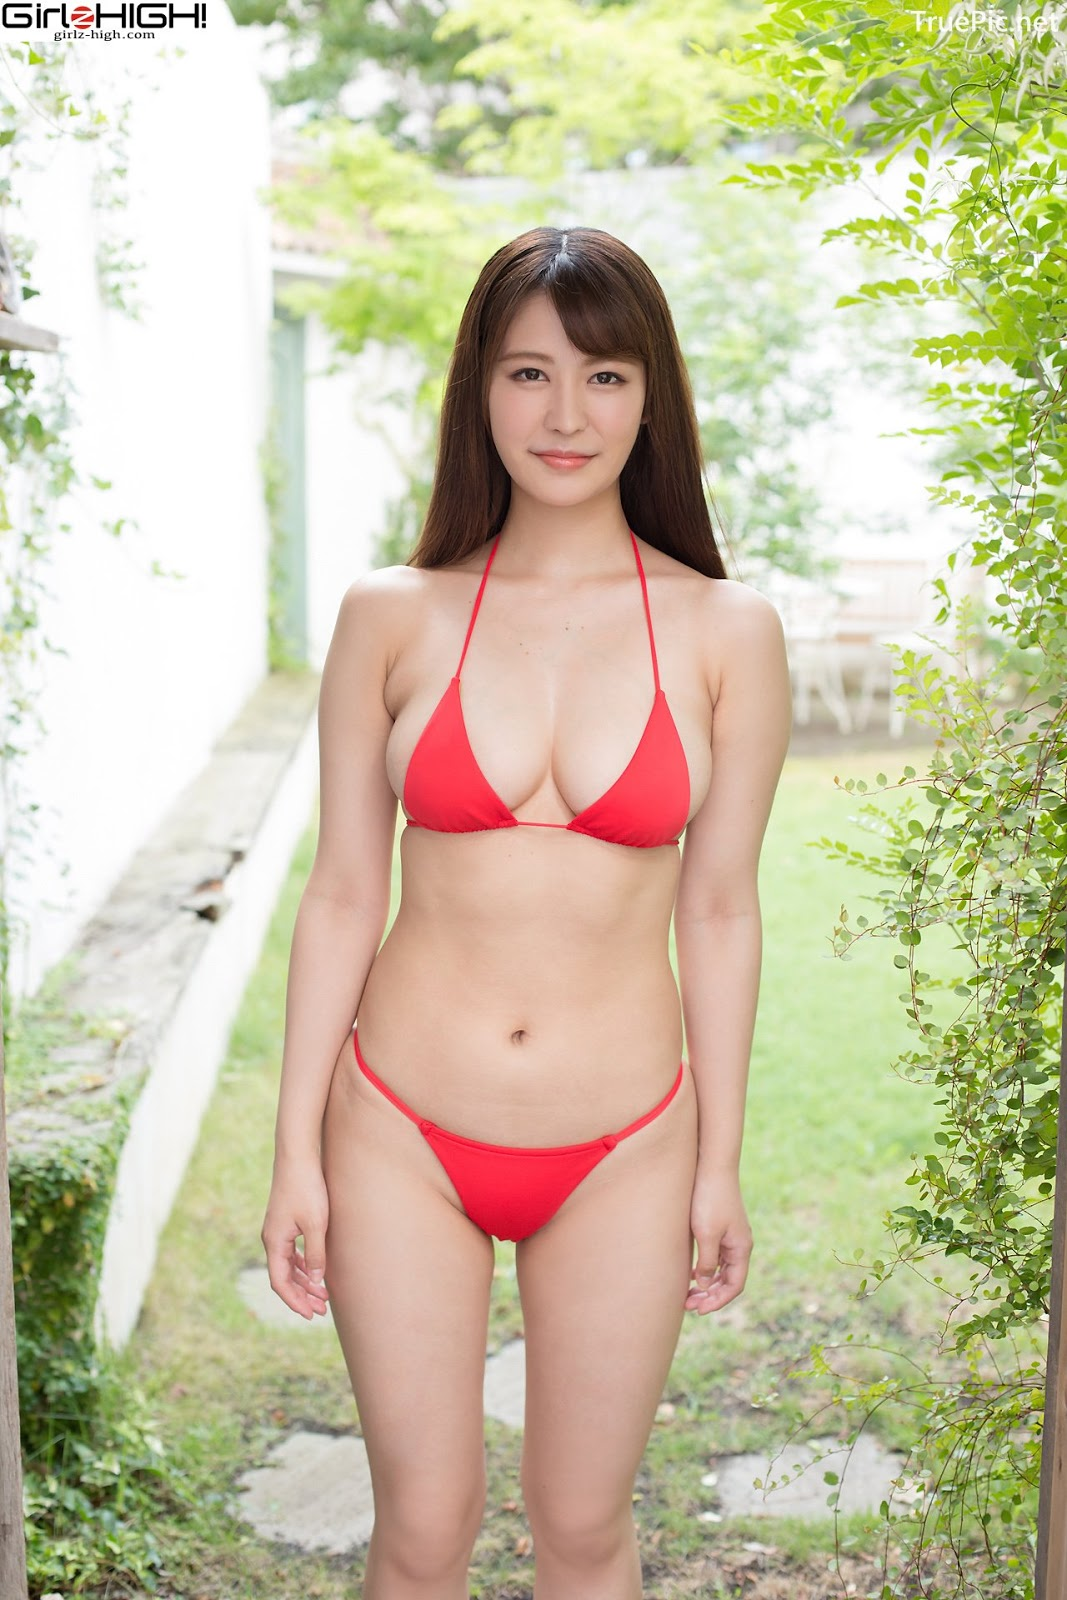 Image Japanese Gravure Idol - Kasumi Yoshinaga - Girlz High Album - TruePic.net - Picture-1